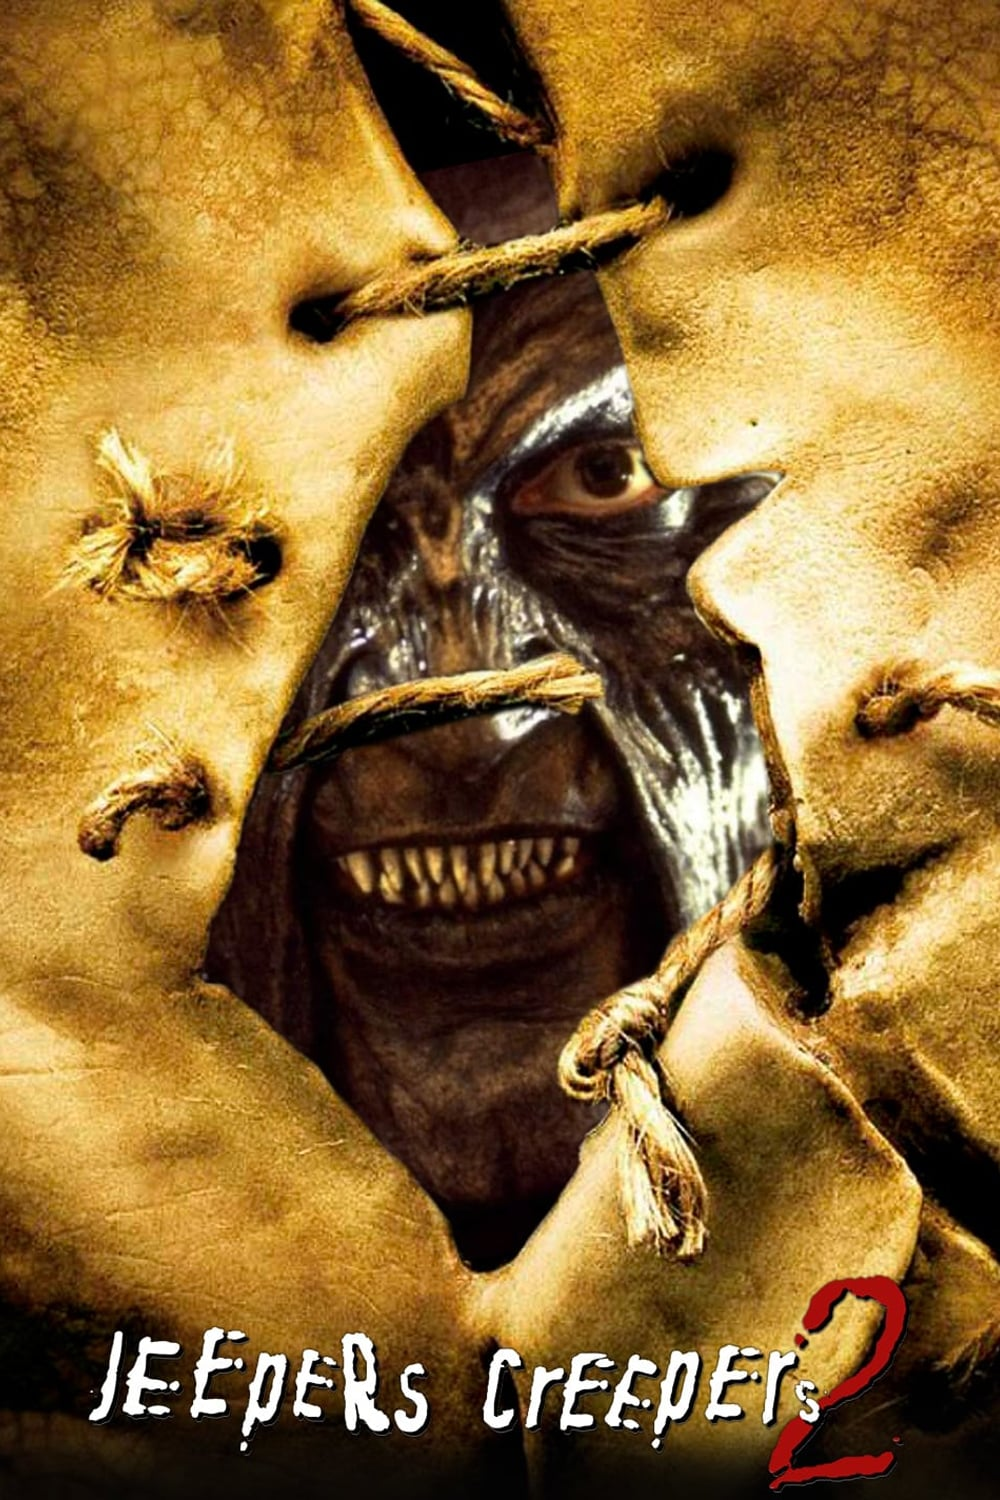 download jeepers creepers 2 full movie